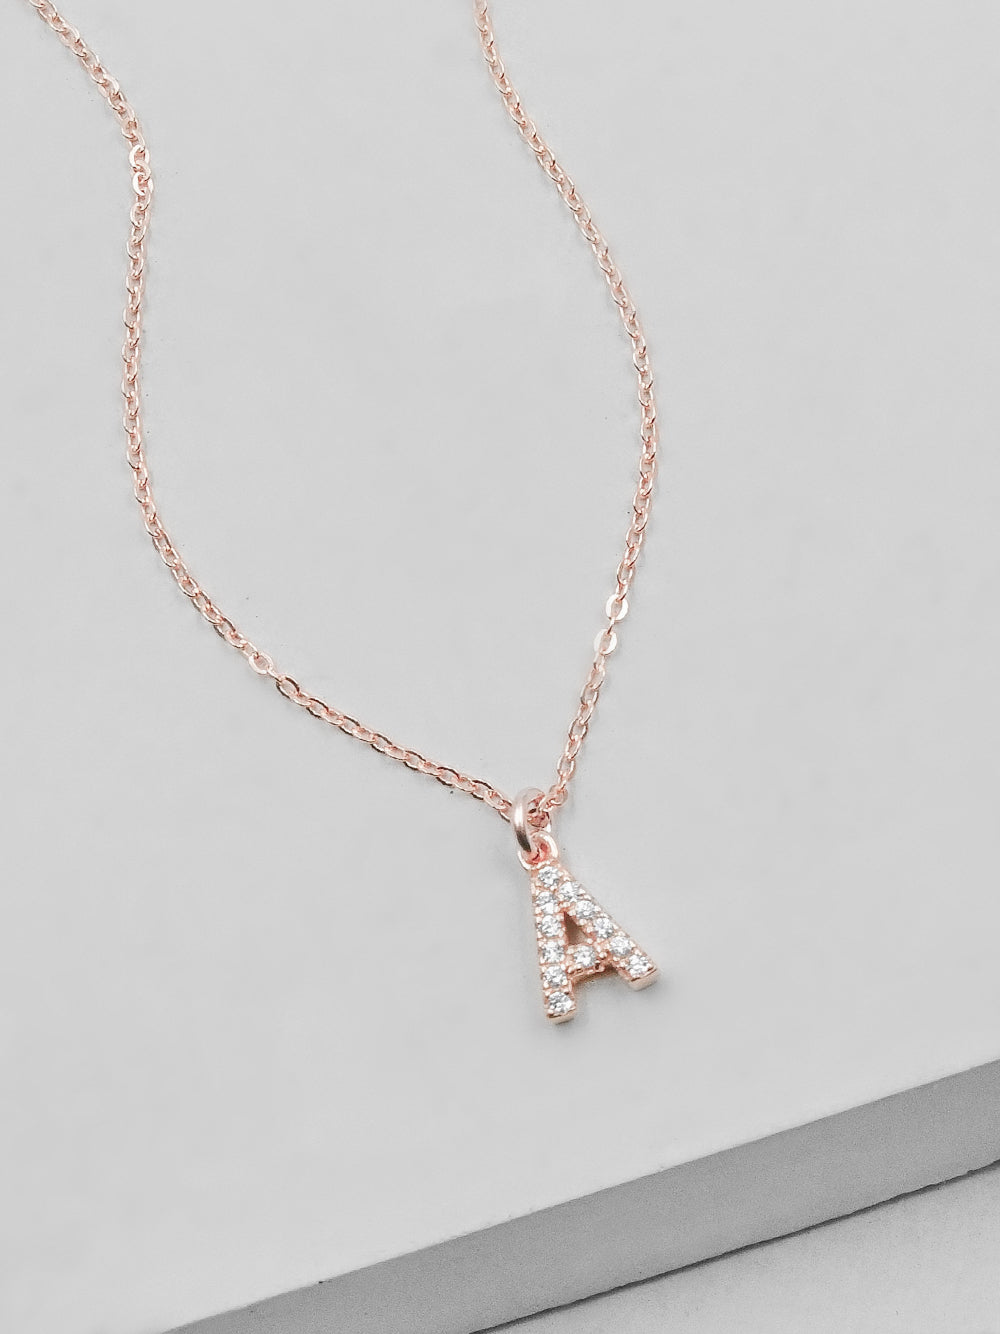 Rose Gold  Initial CZ Necklace by The Faint Hearted Jewelry